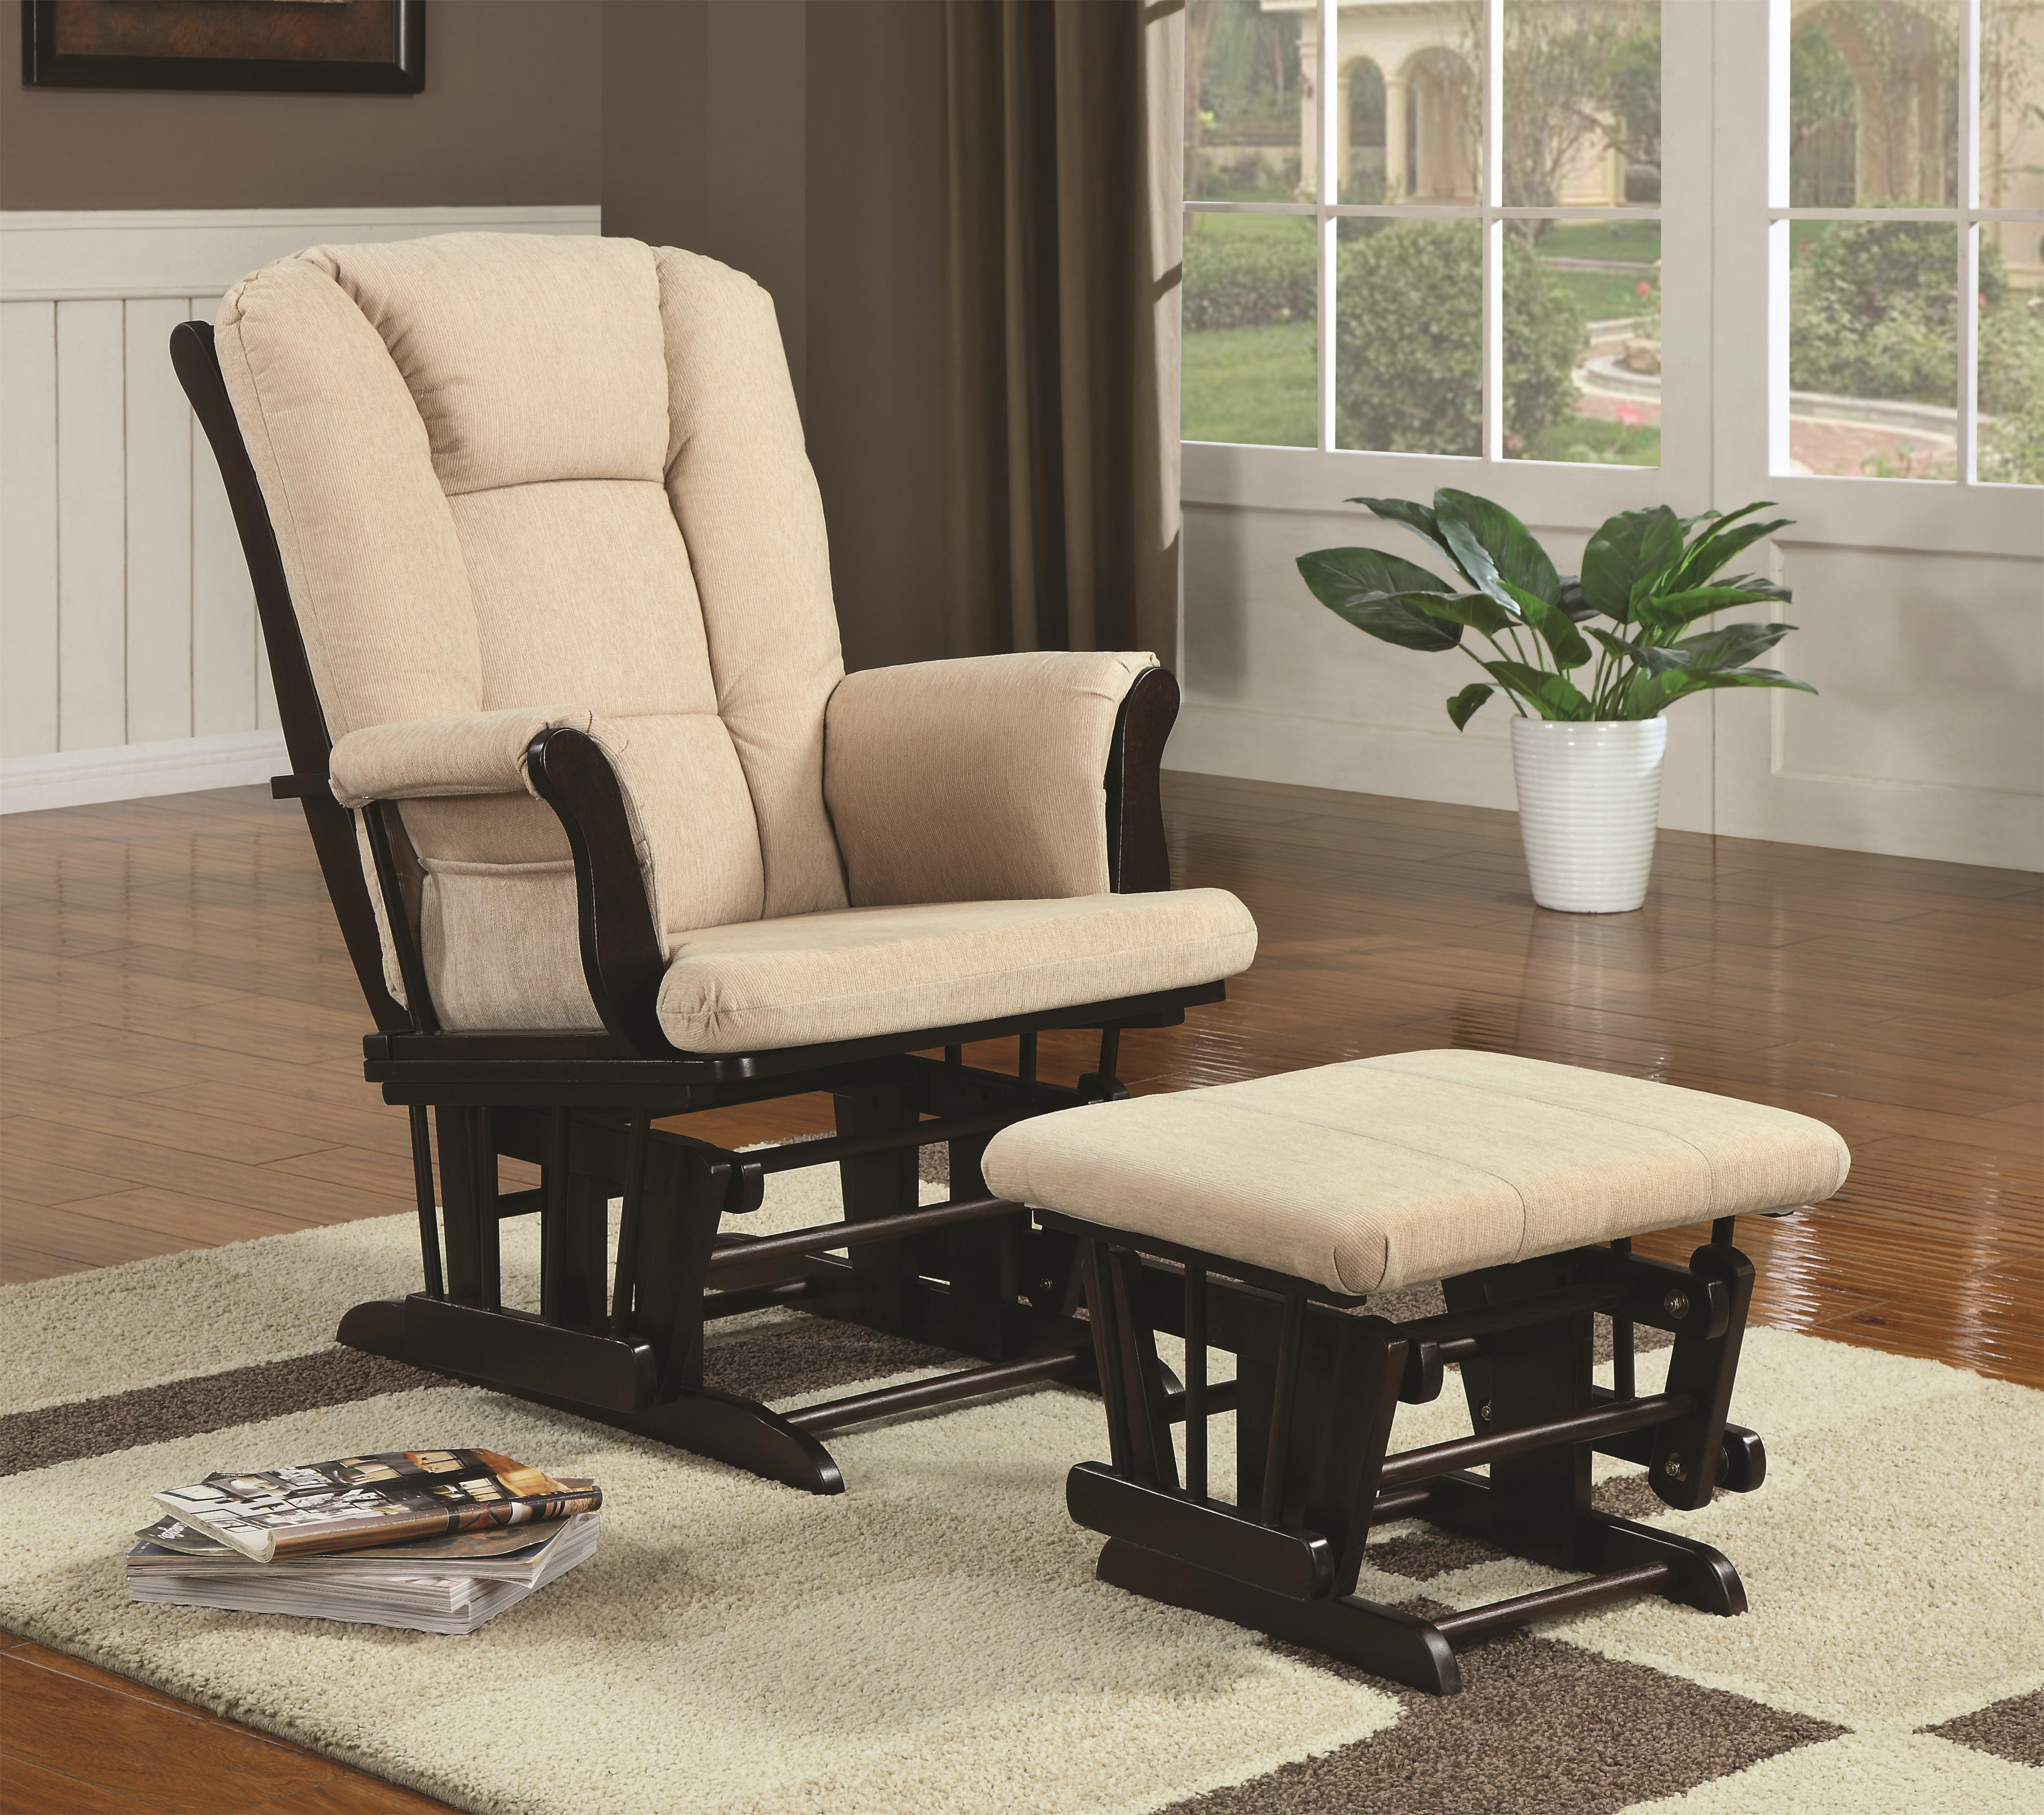 Coaster Rockers Rocking Chair - Item Number: 650011